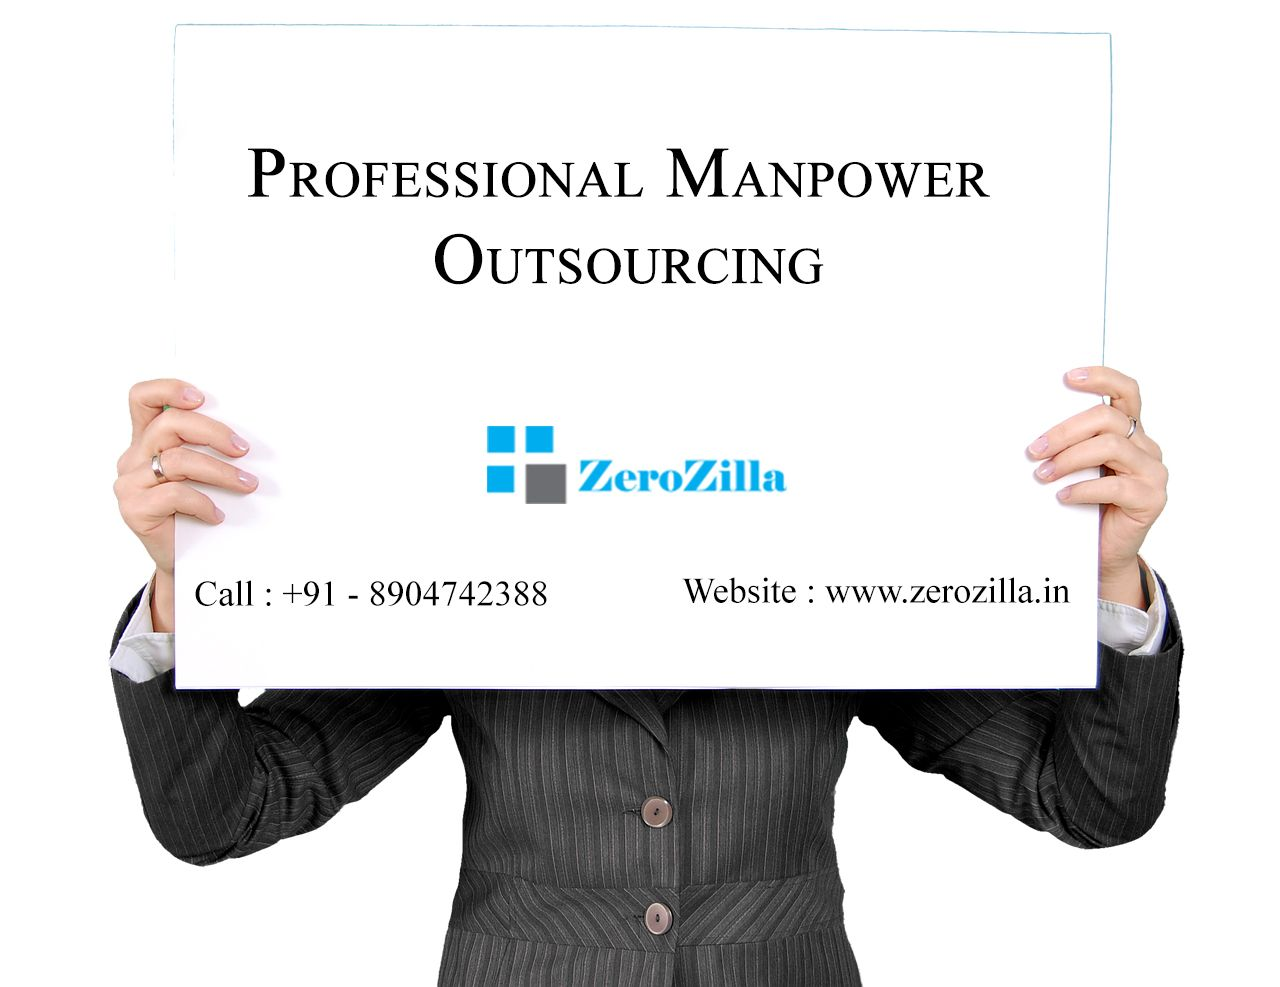 Manpower Outsourcing Company In Bangalore Website : www.zerozilla.in Call : +91 - 8904742388